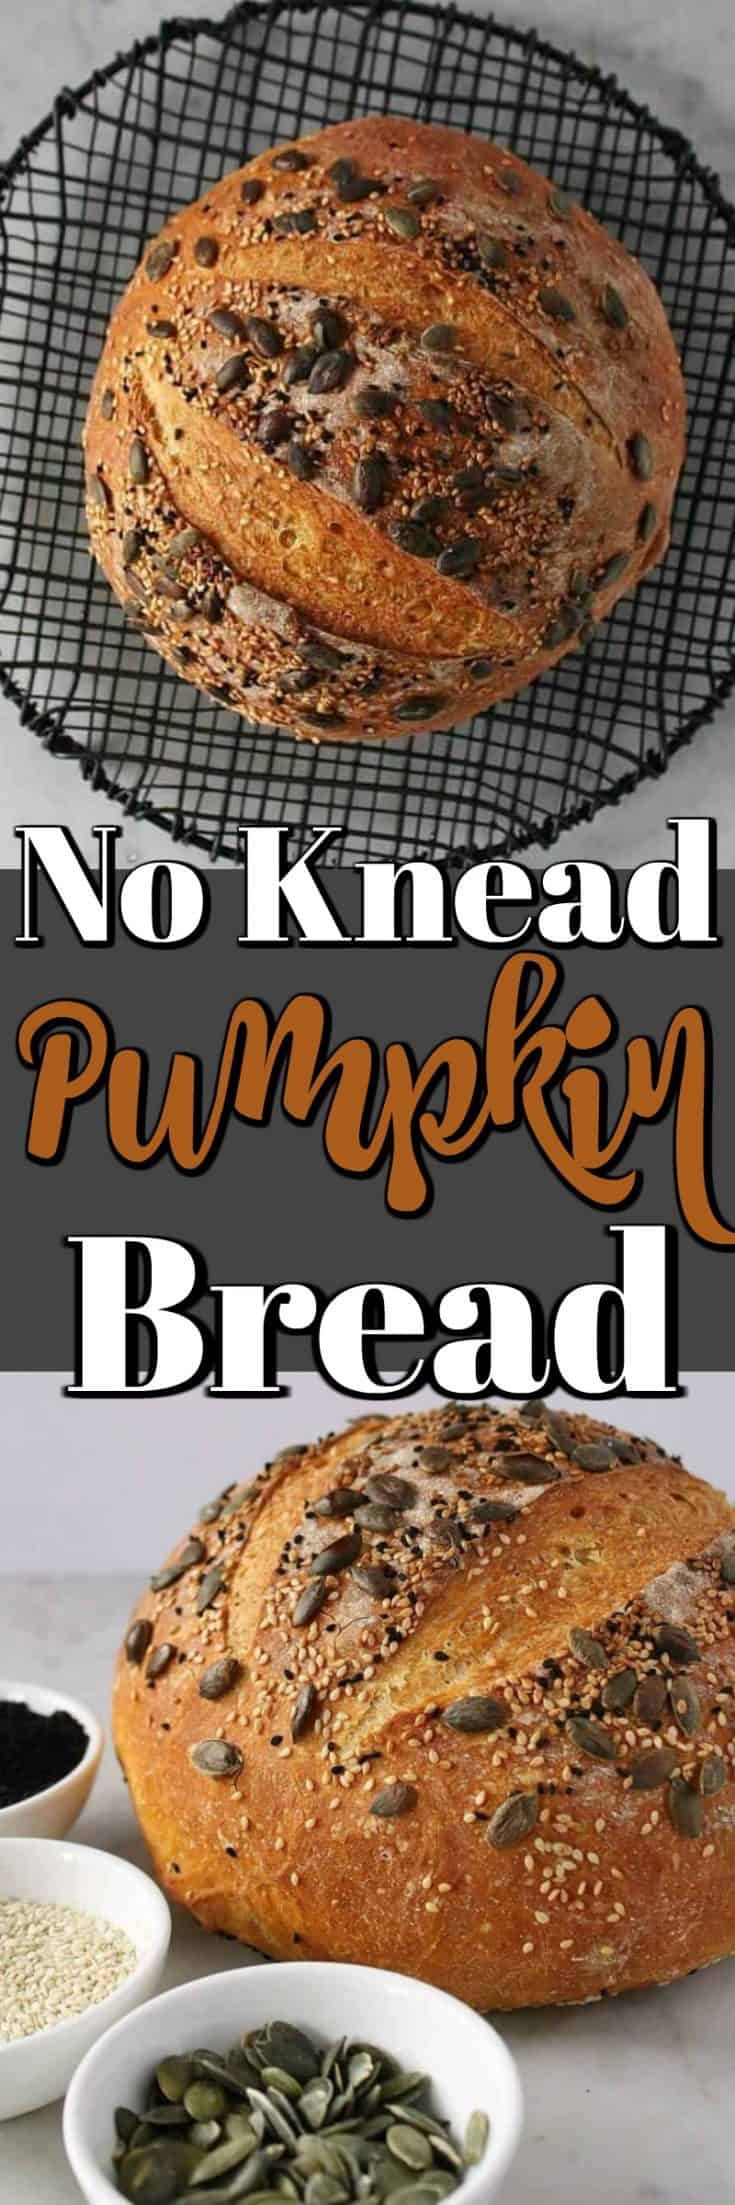 Let us walk you through the steps on how to make this artisan looking Pumpkin No Knead Bread!! #bread #pumpkin #homemade